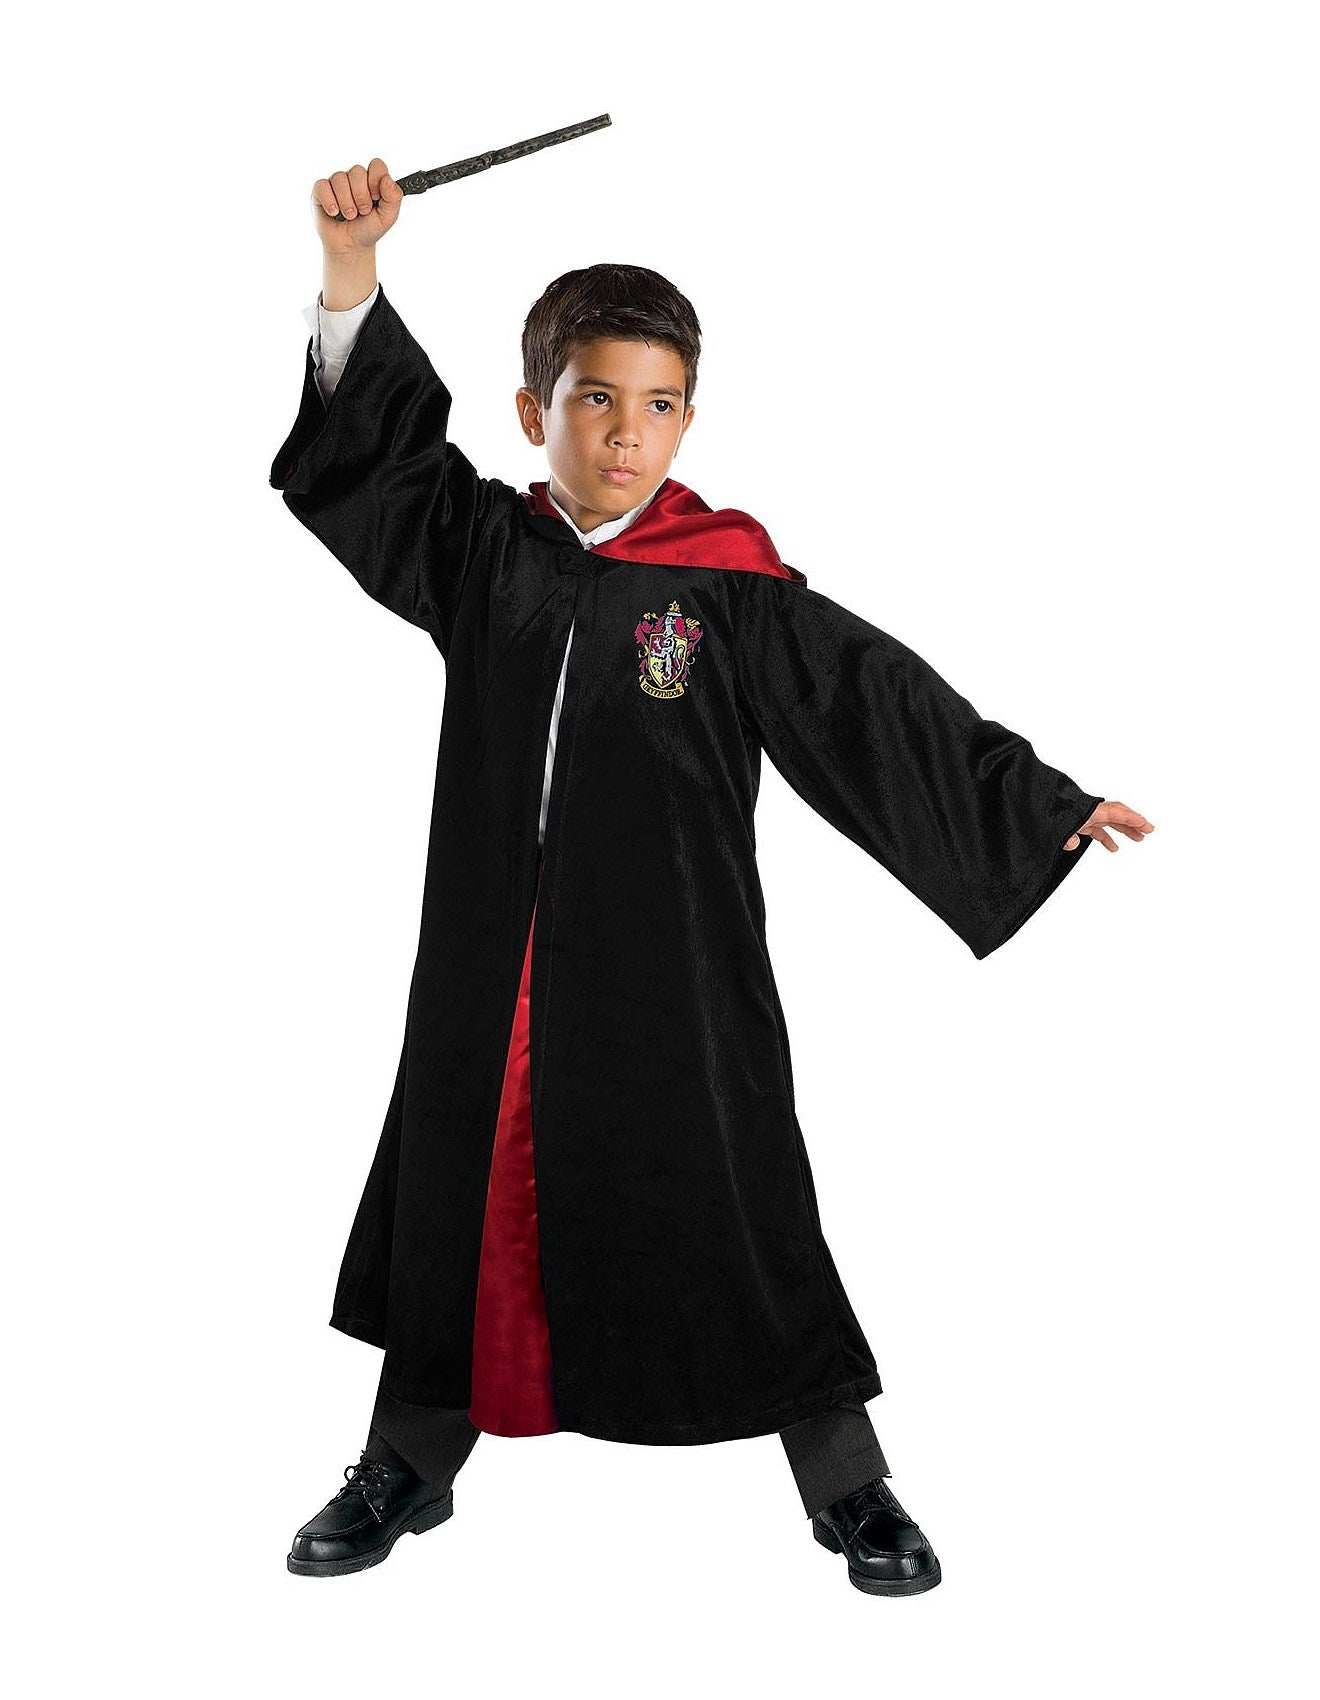 HARRY POTTER DRESS UP DELUXE ROBE SIZE 6